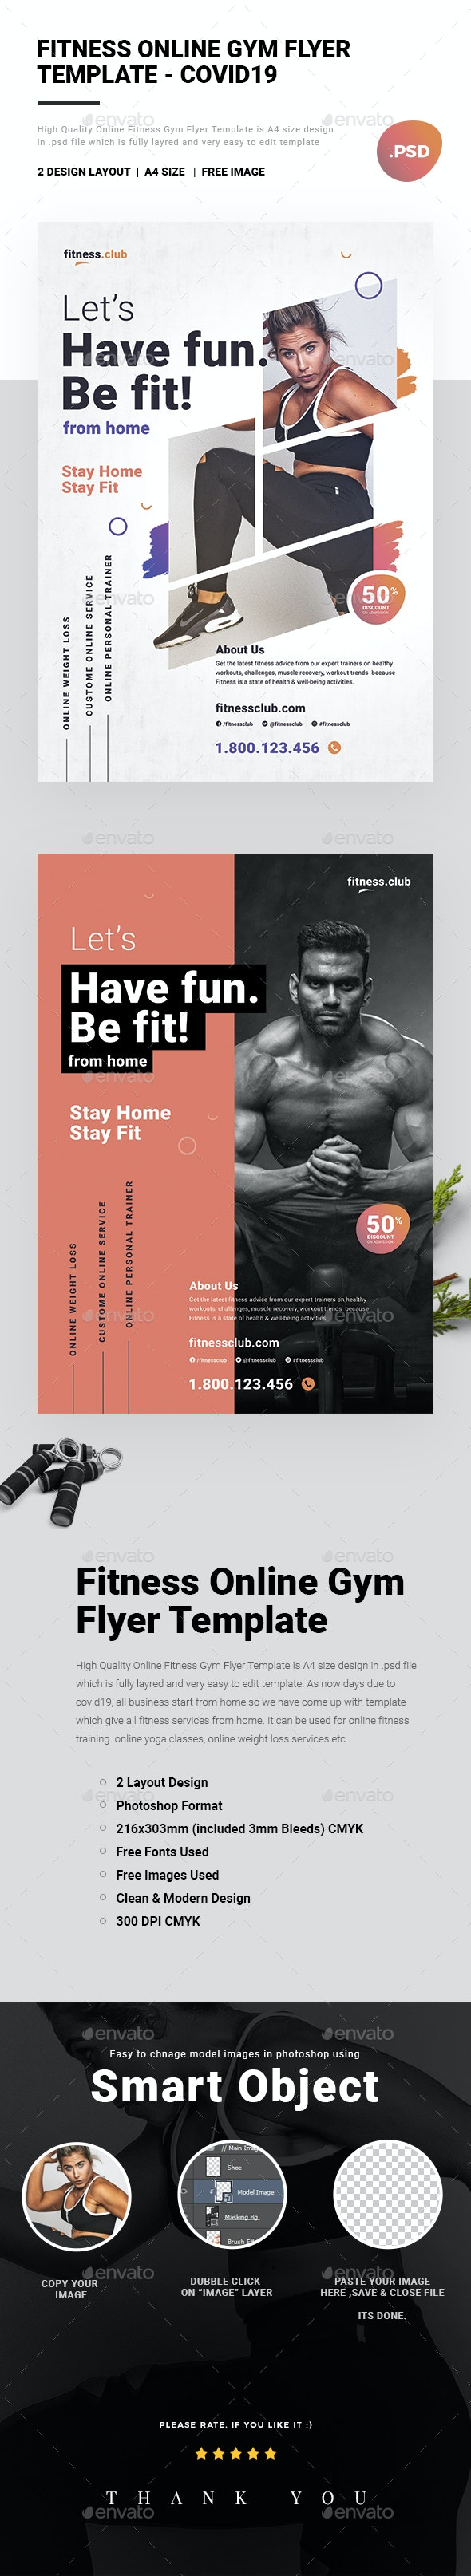 Fitness Online Gym Flyer Template - covid19 - Sports Events